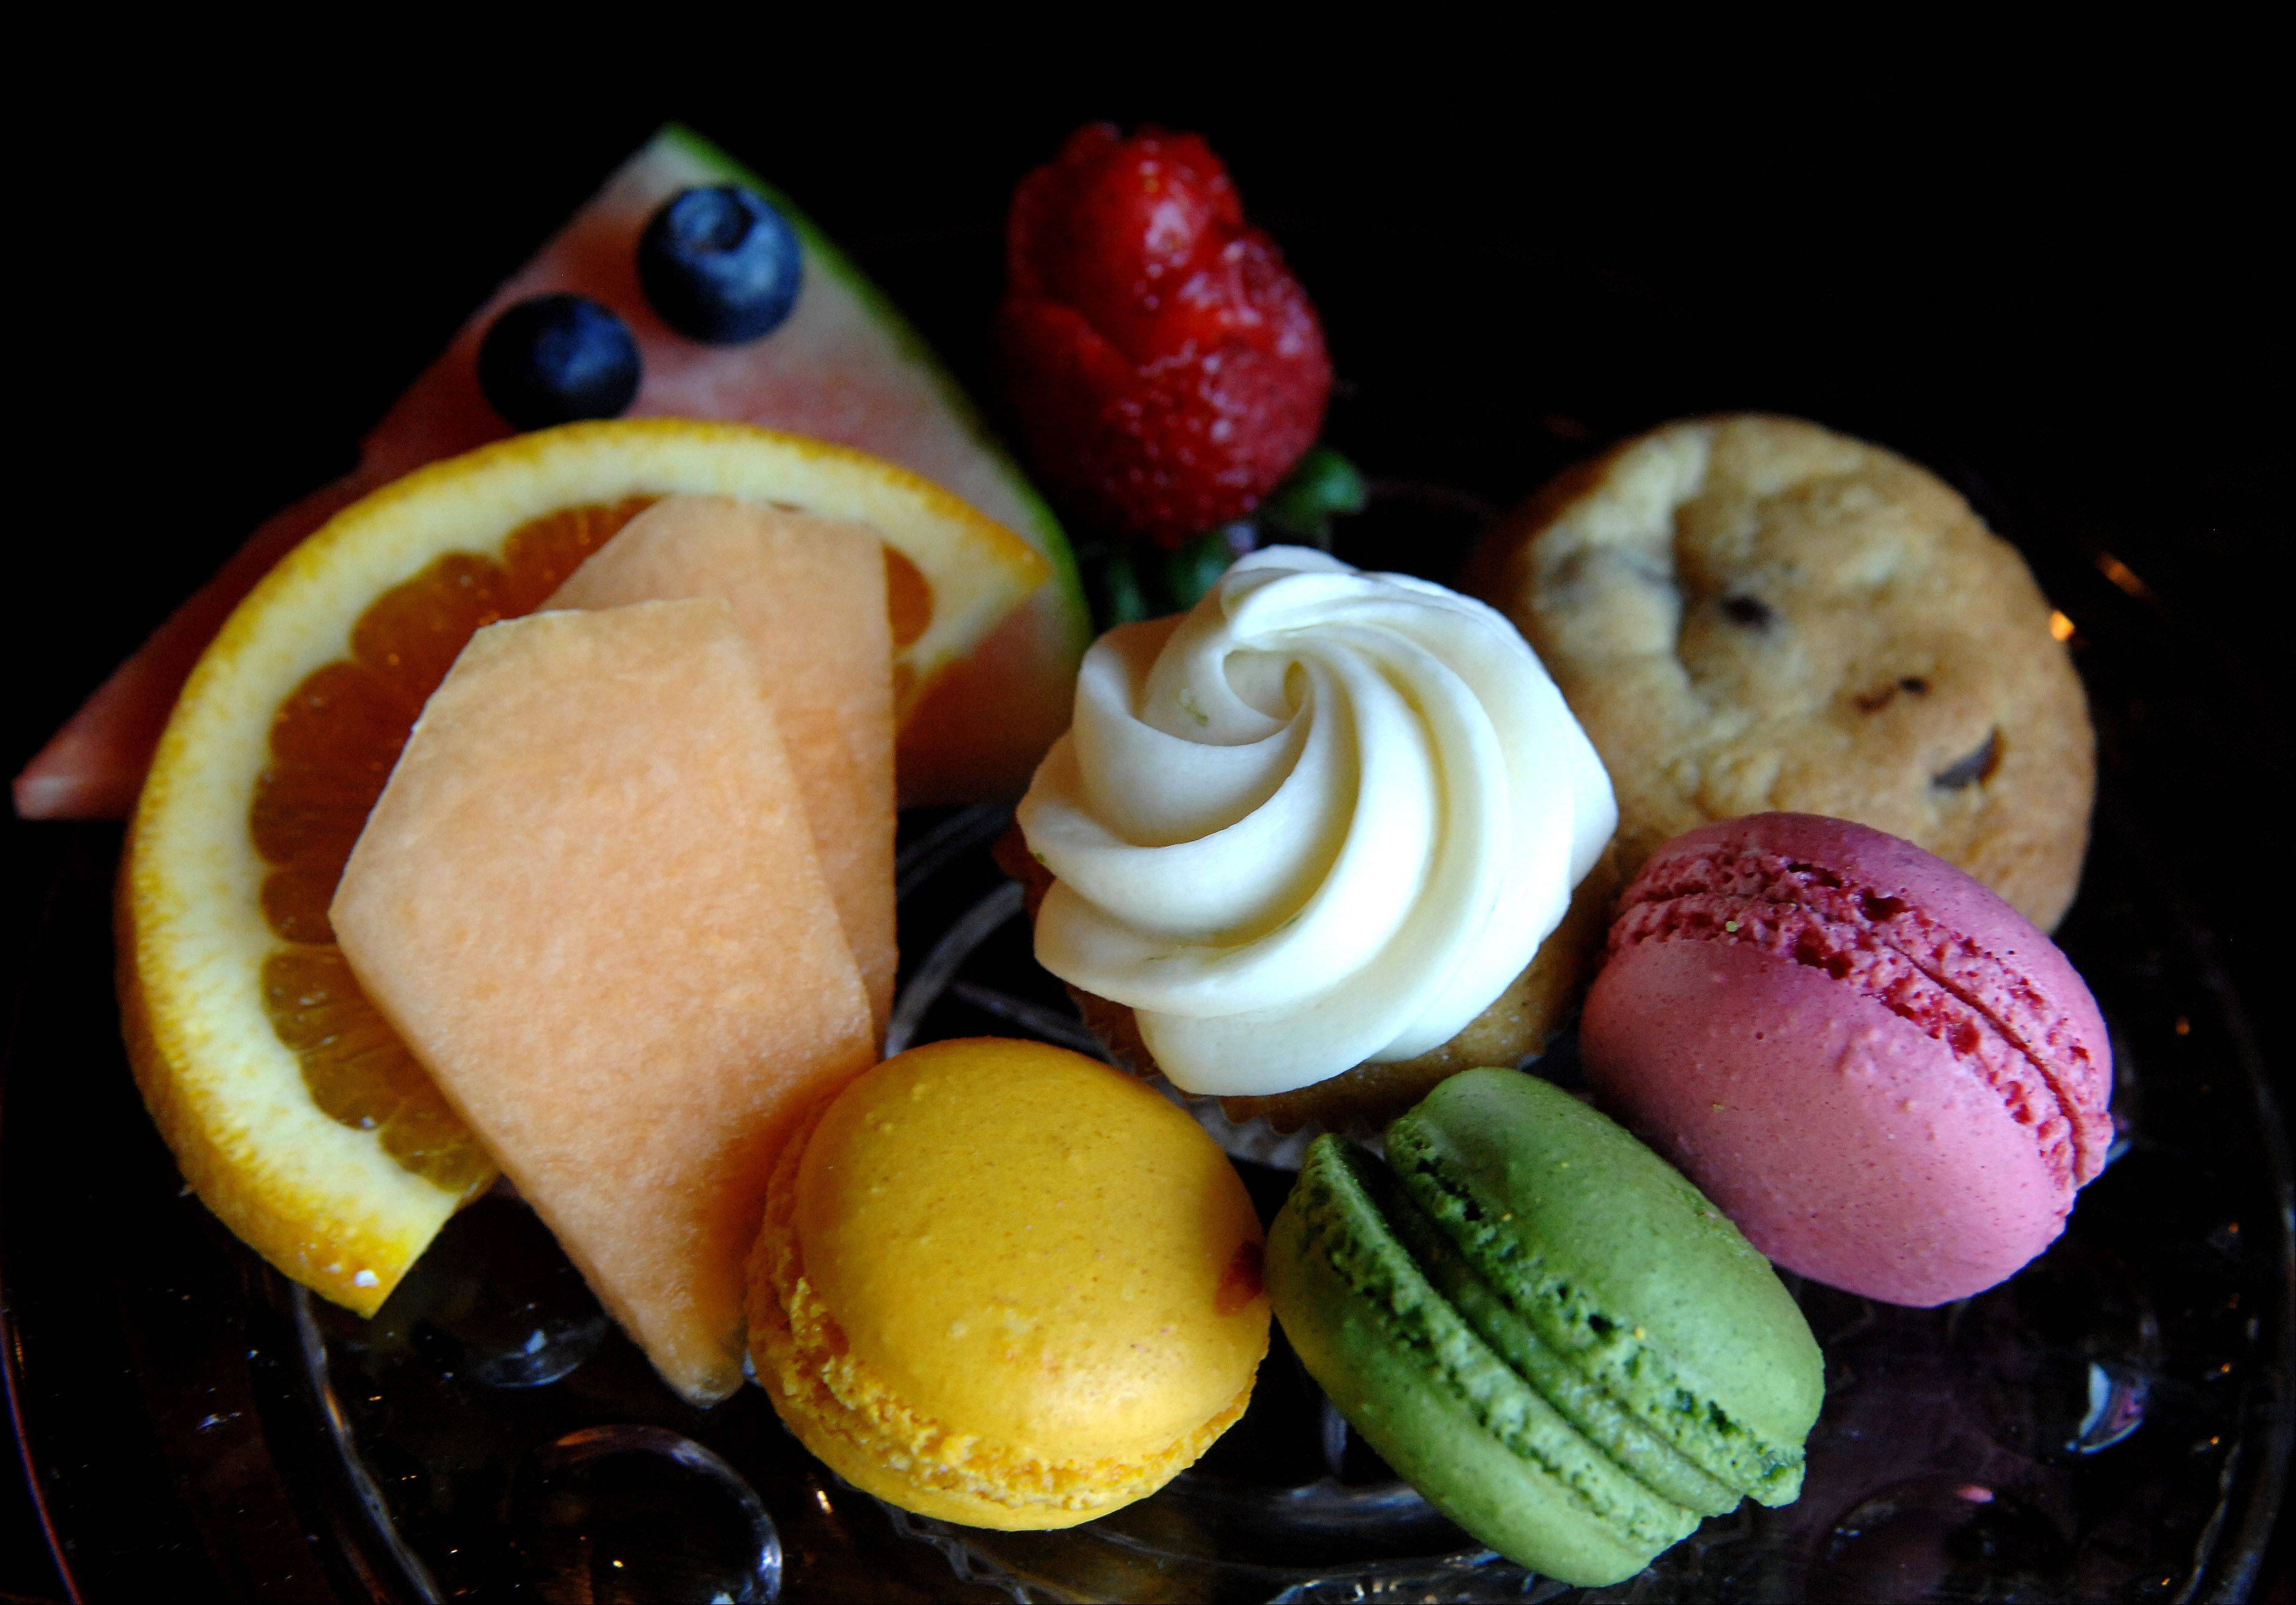 A plate of sweets and fruit tempts those who wonder into Chez Moi in Geneva.